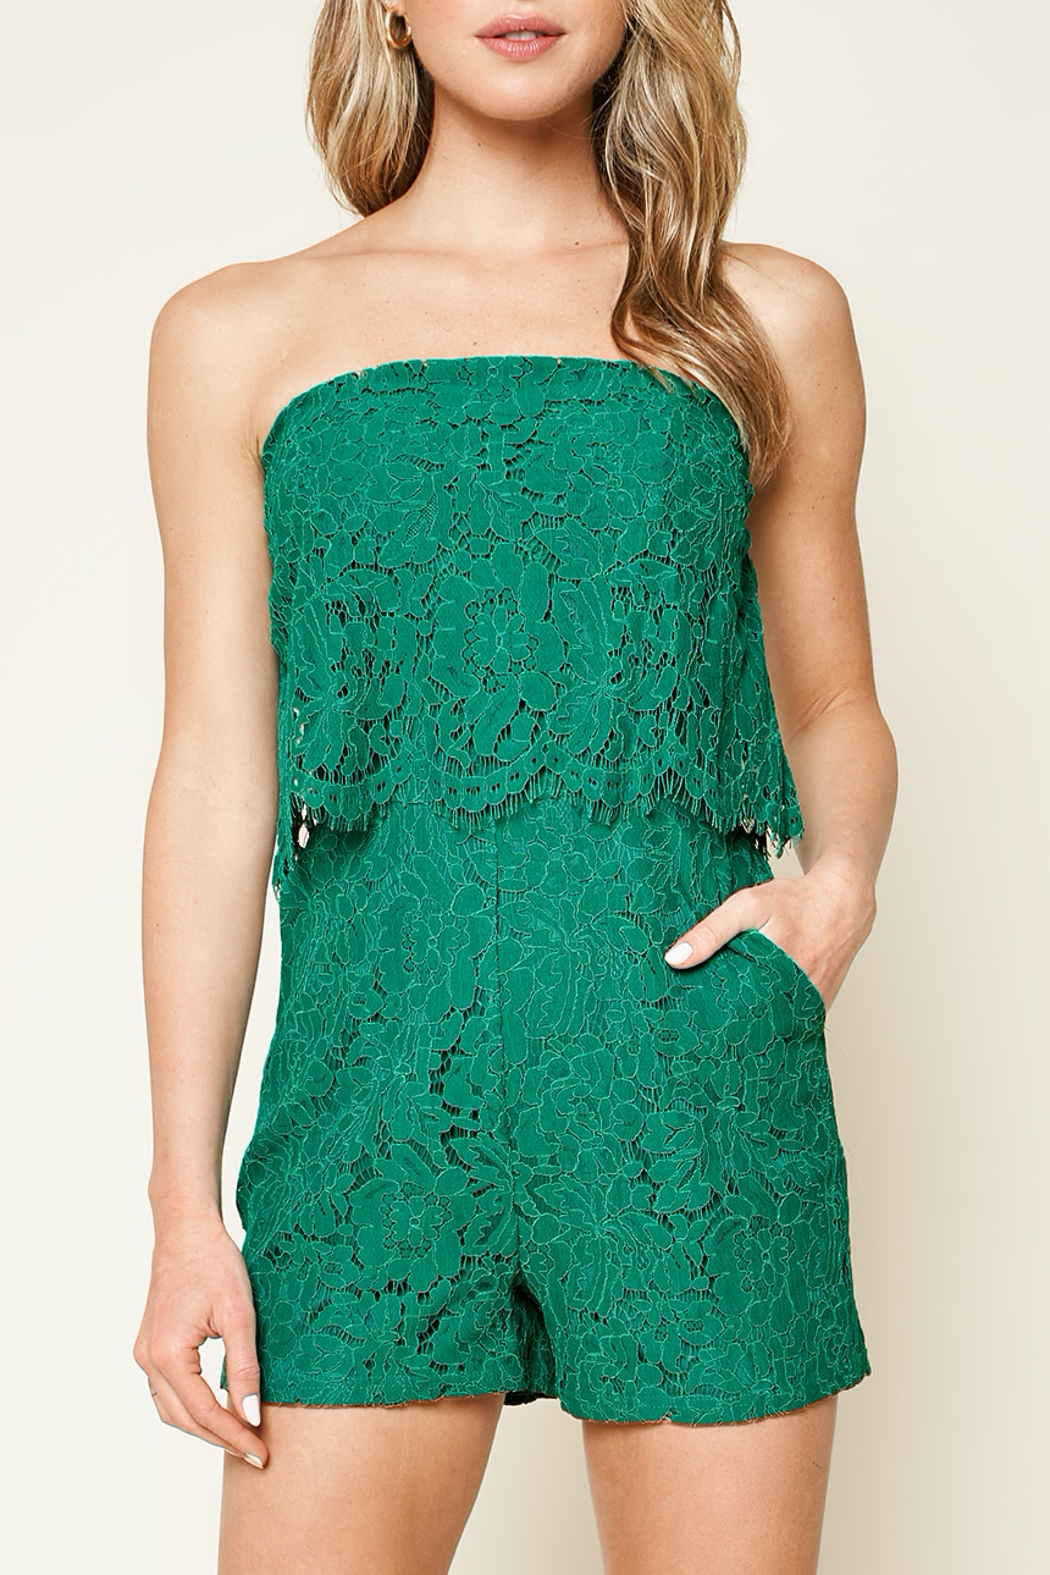 Sugarlips Emerald City Lace Romper - Main Image